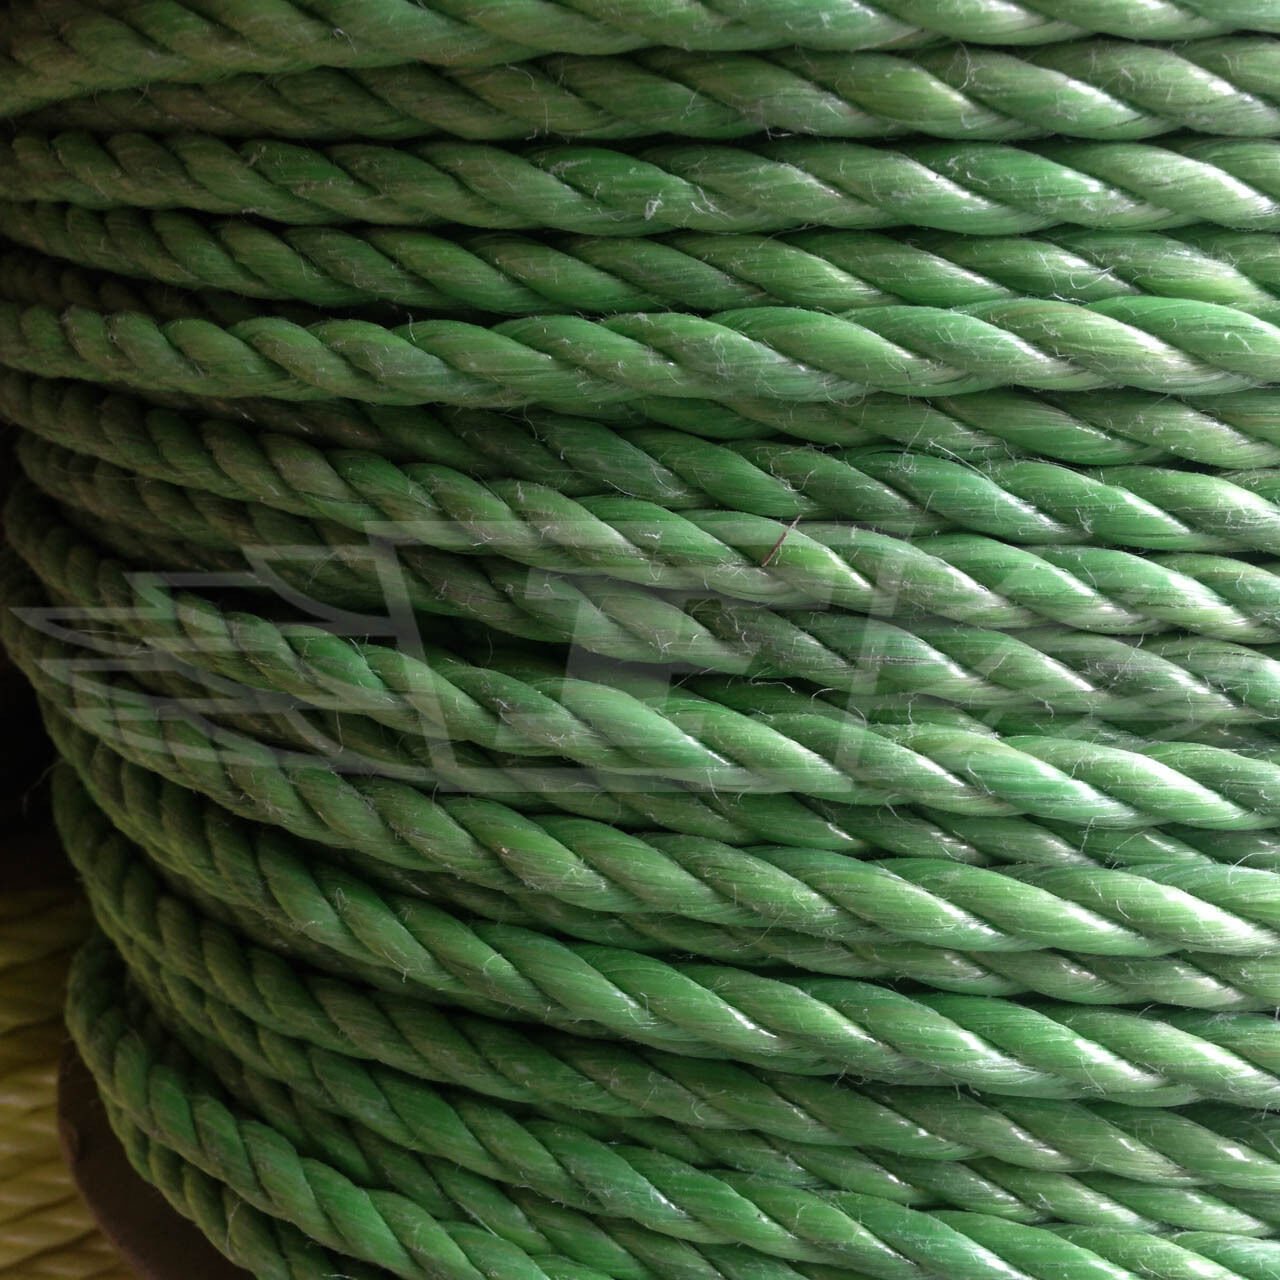 GREEN POLY ROPE COILS POLYROPE POLYPROPYLENE, 6mm, 8mm, 10mm, 12mm, 16mm, NEW